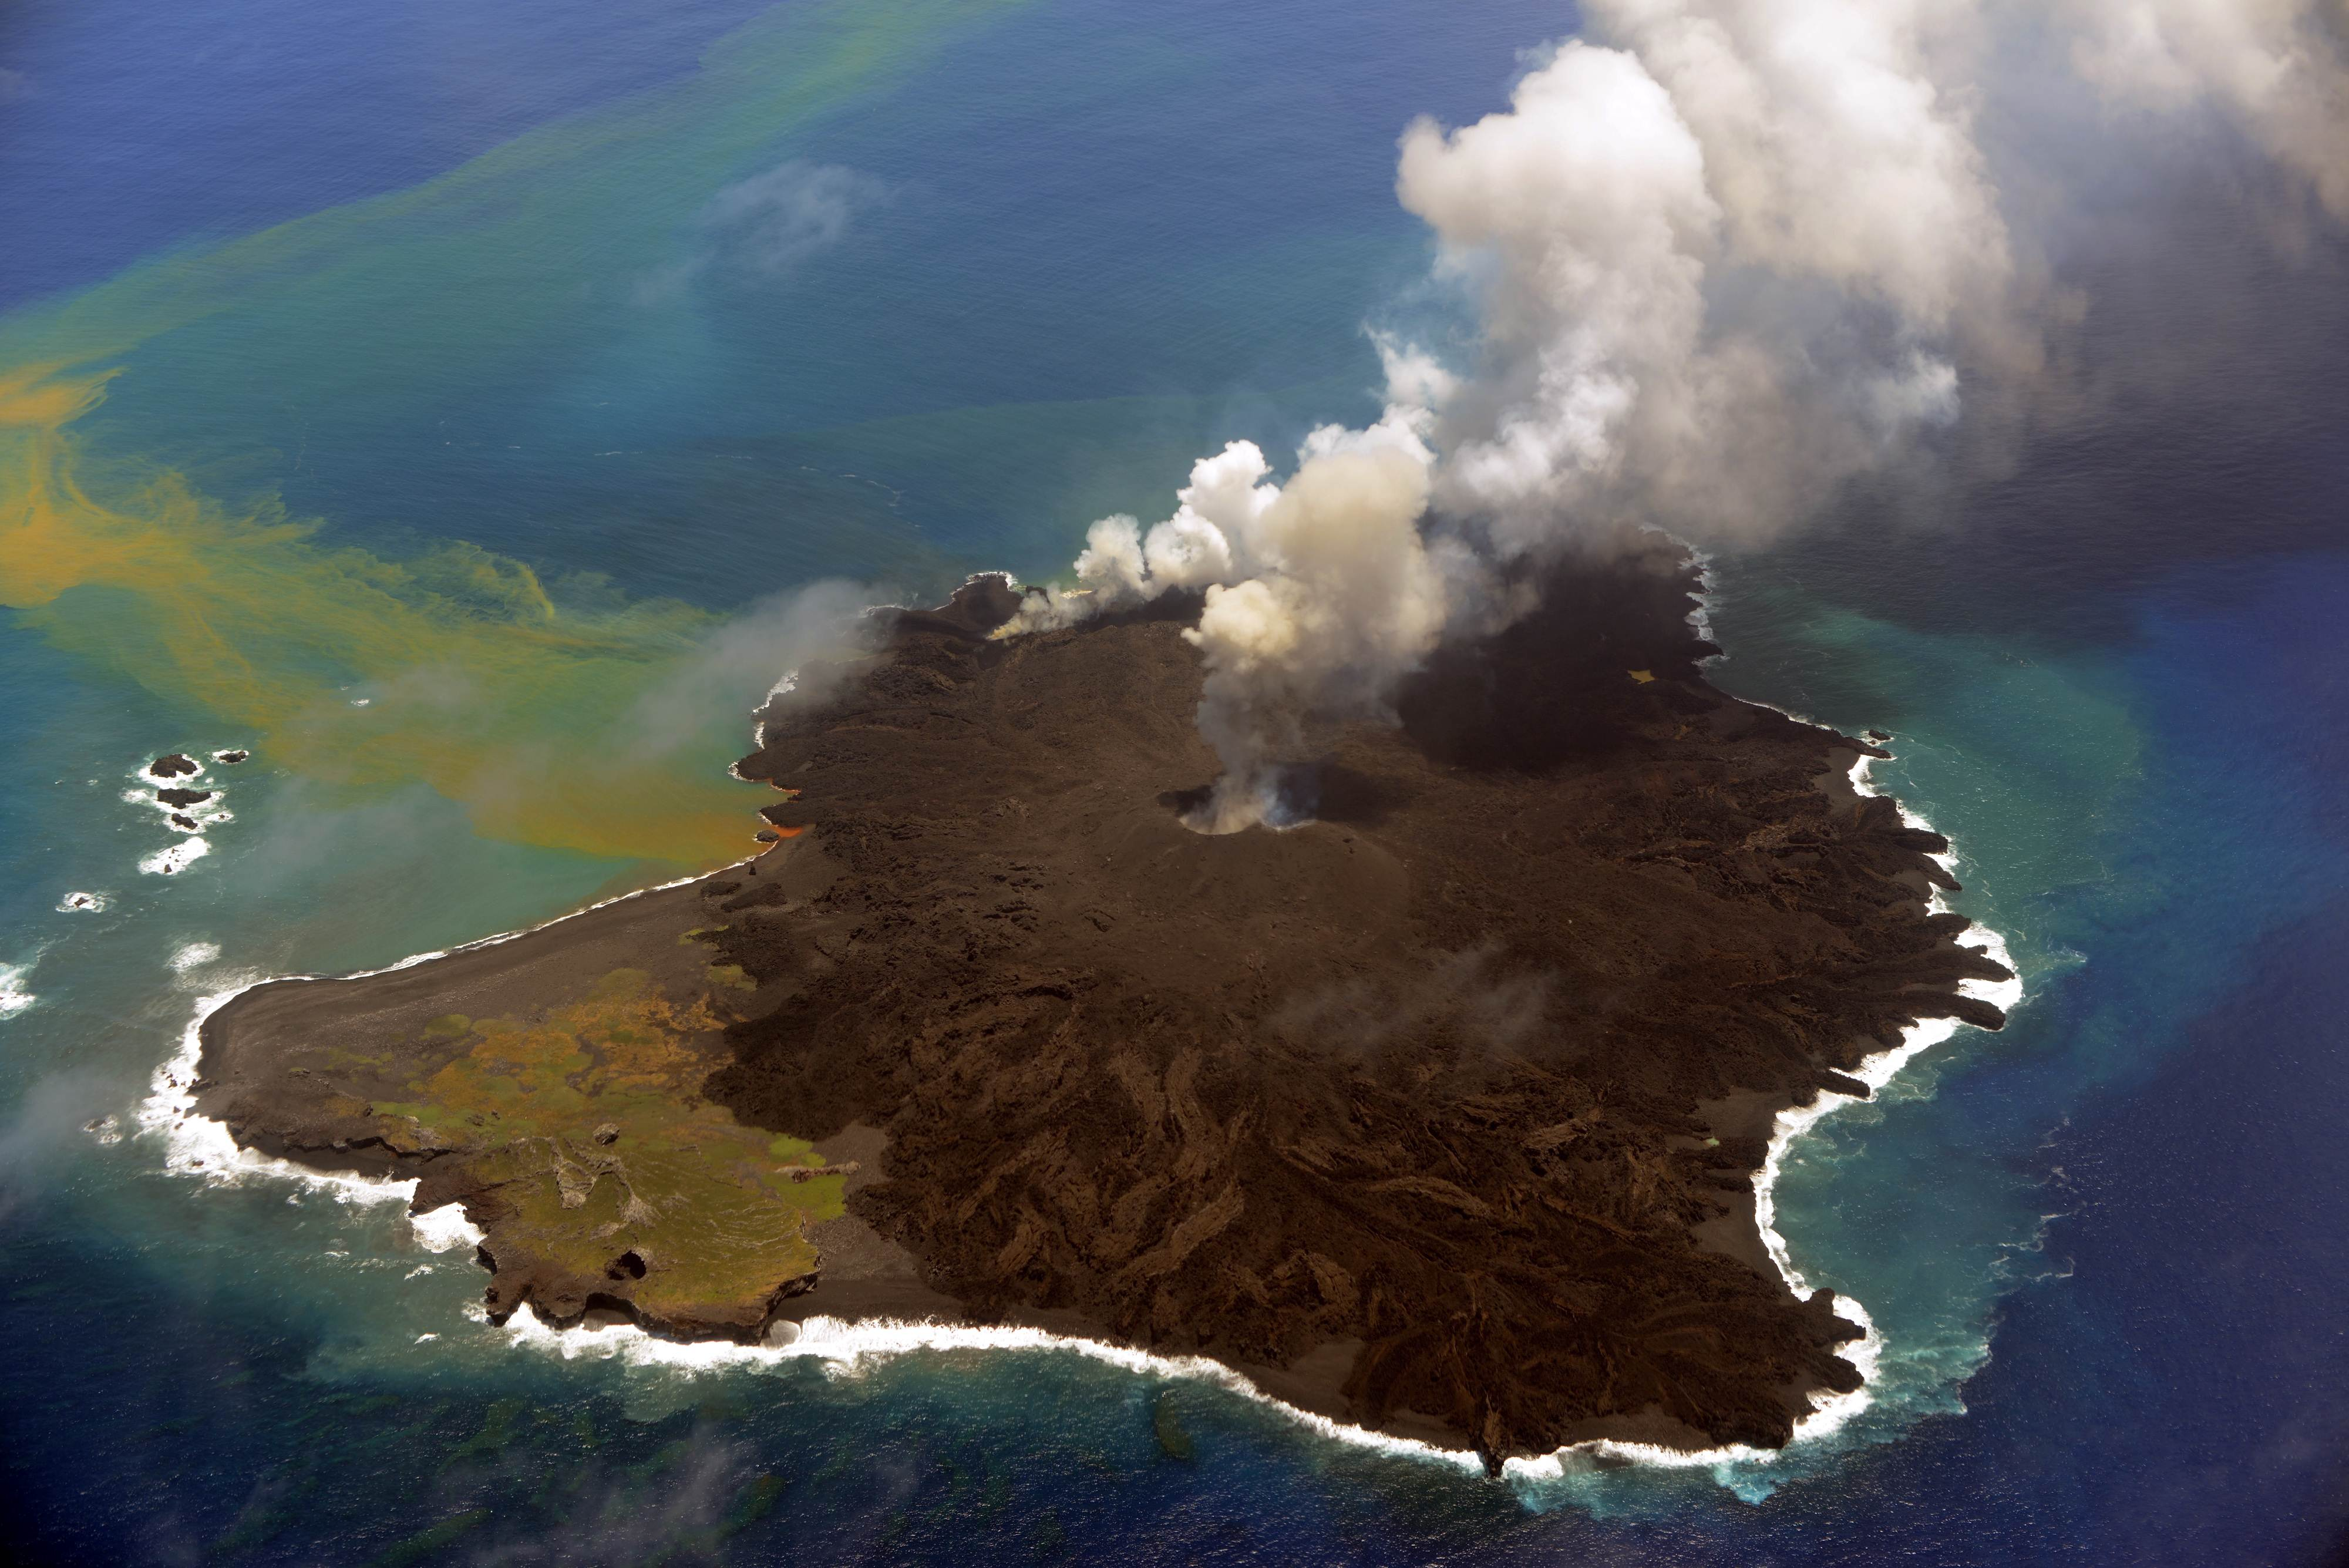 Volcanic Nishinoshima still smoking, growing | The Japan Times